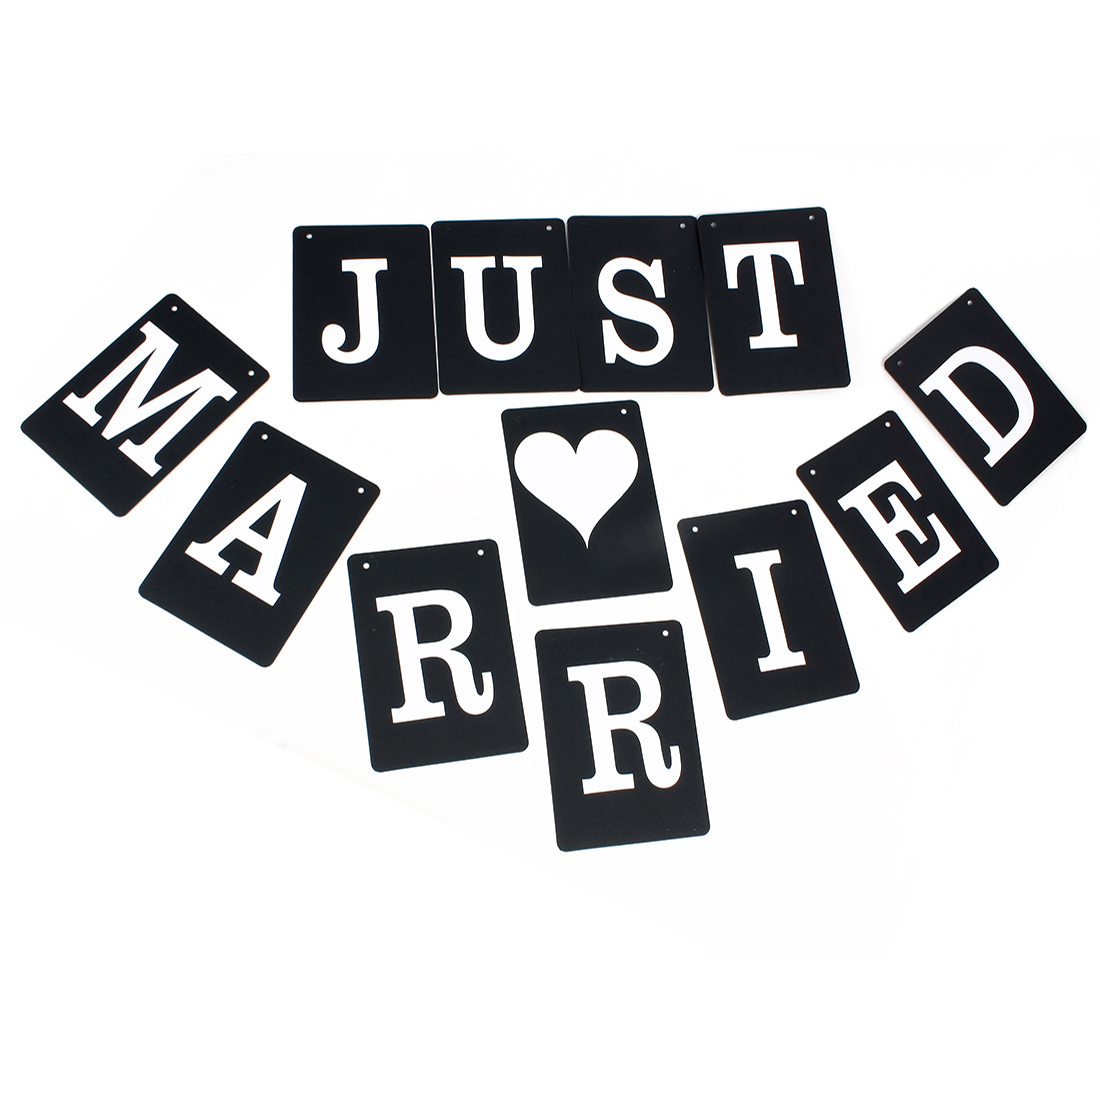 JUST MARRIED Bunting Sign Wedding Banner Photo Prop Party Decoration Black